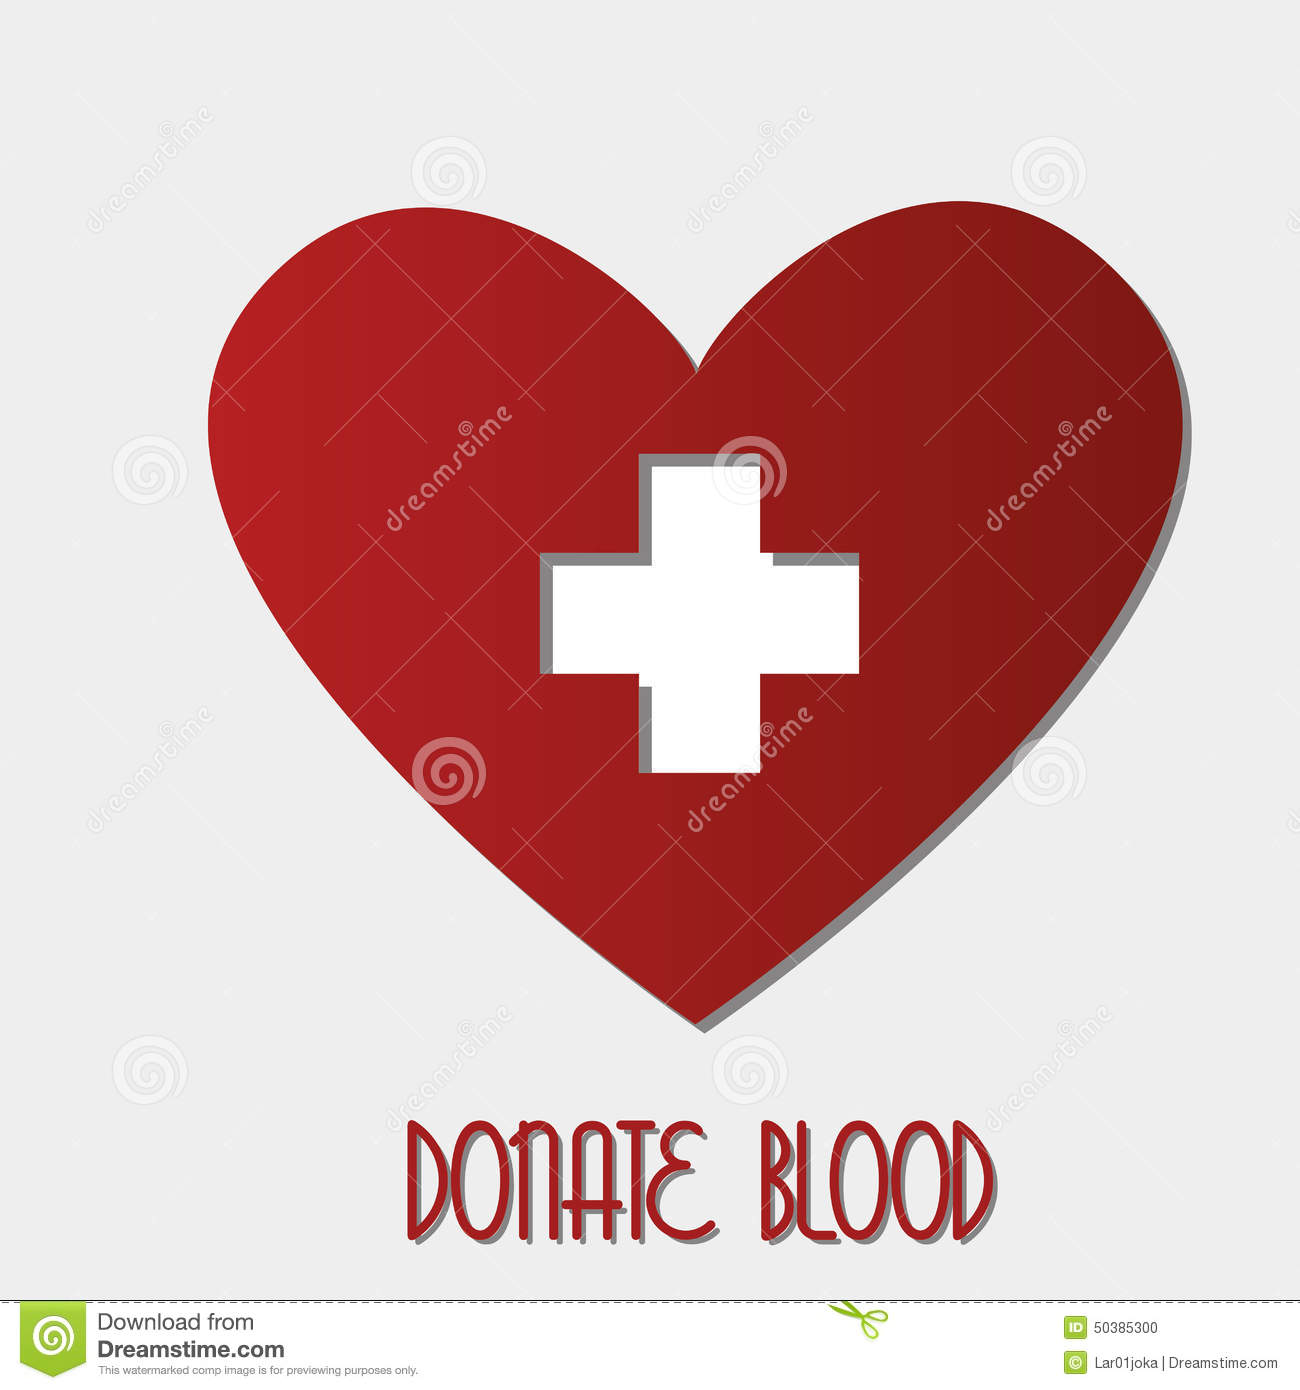 giving blood clipart - photo #45